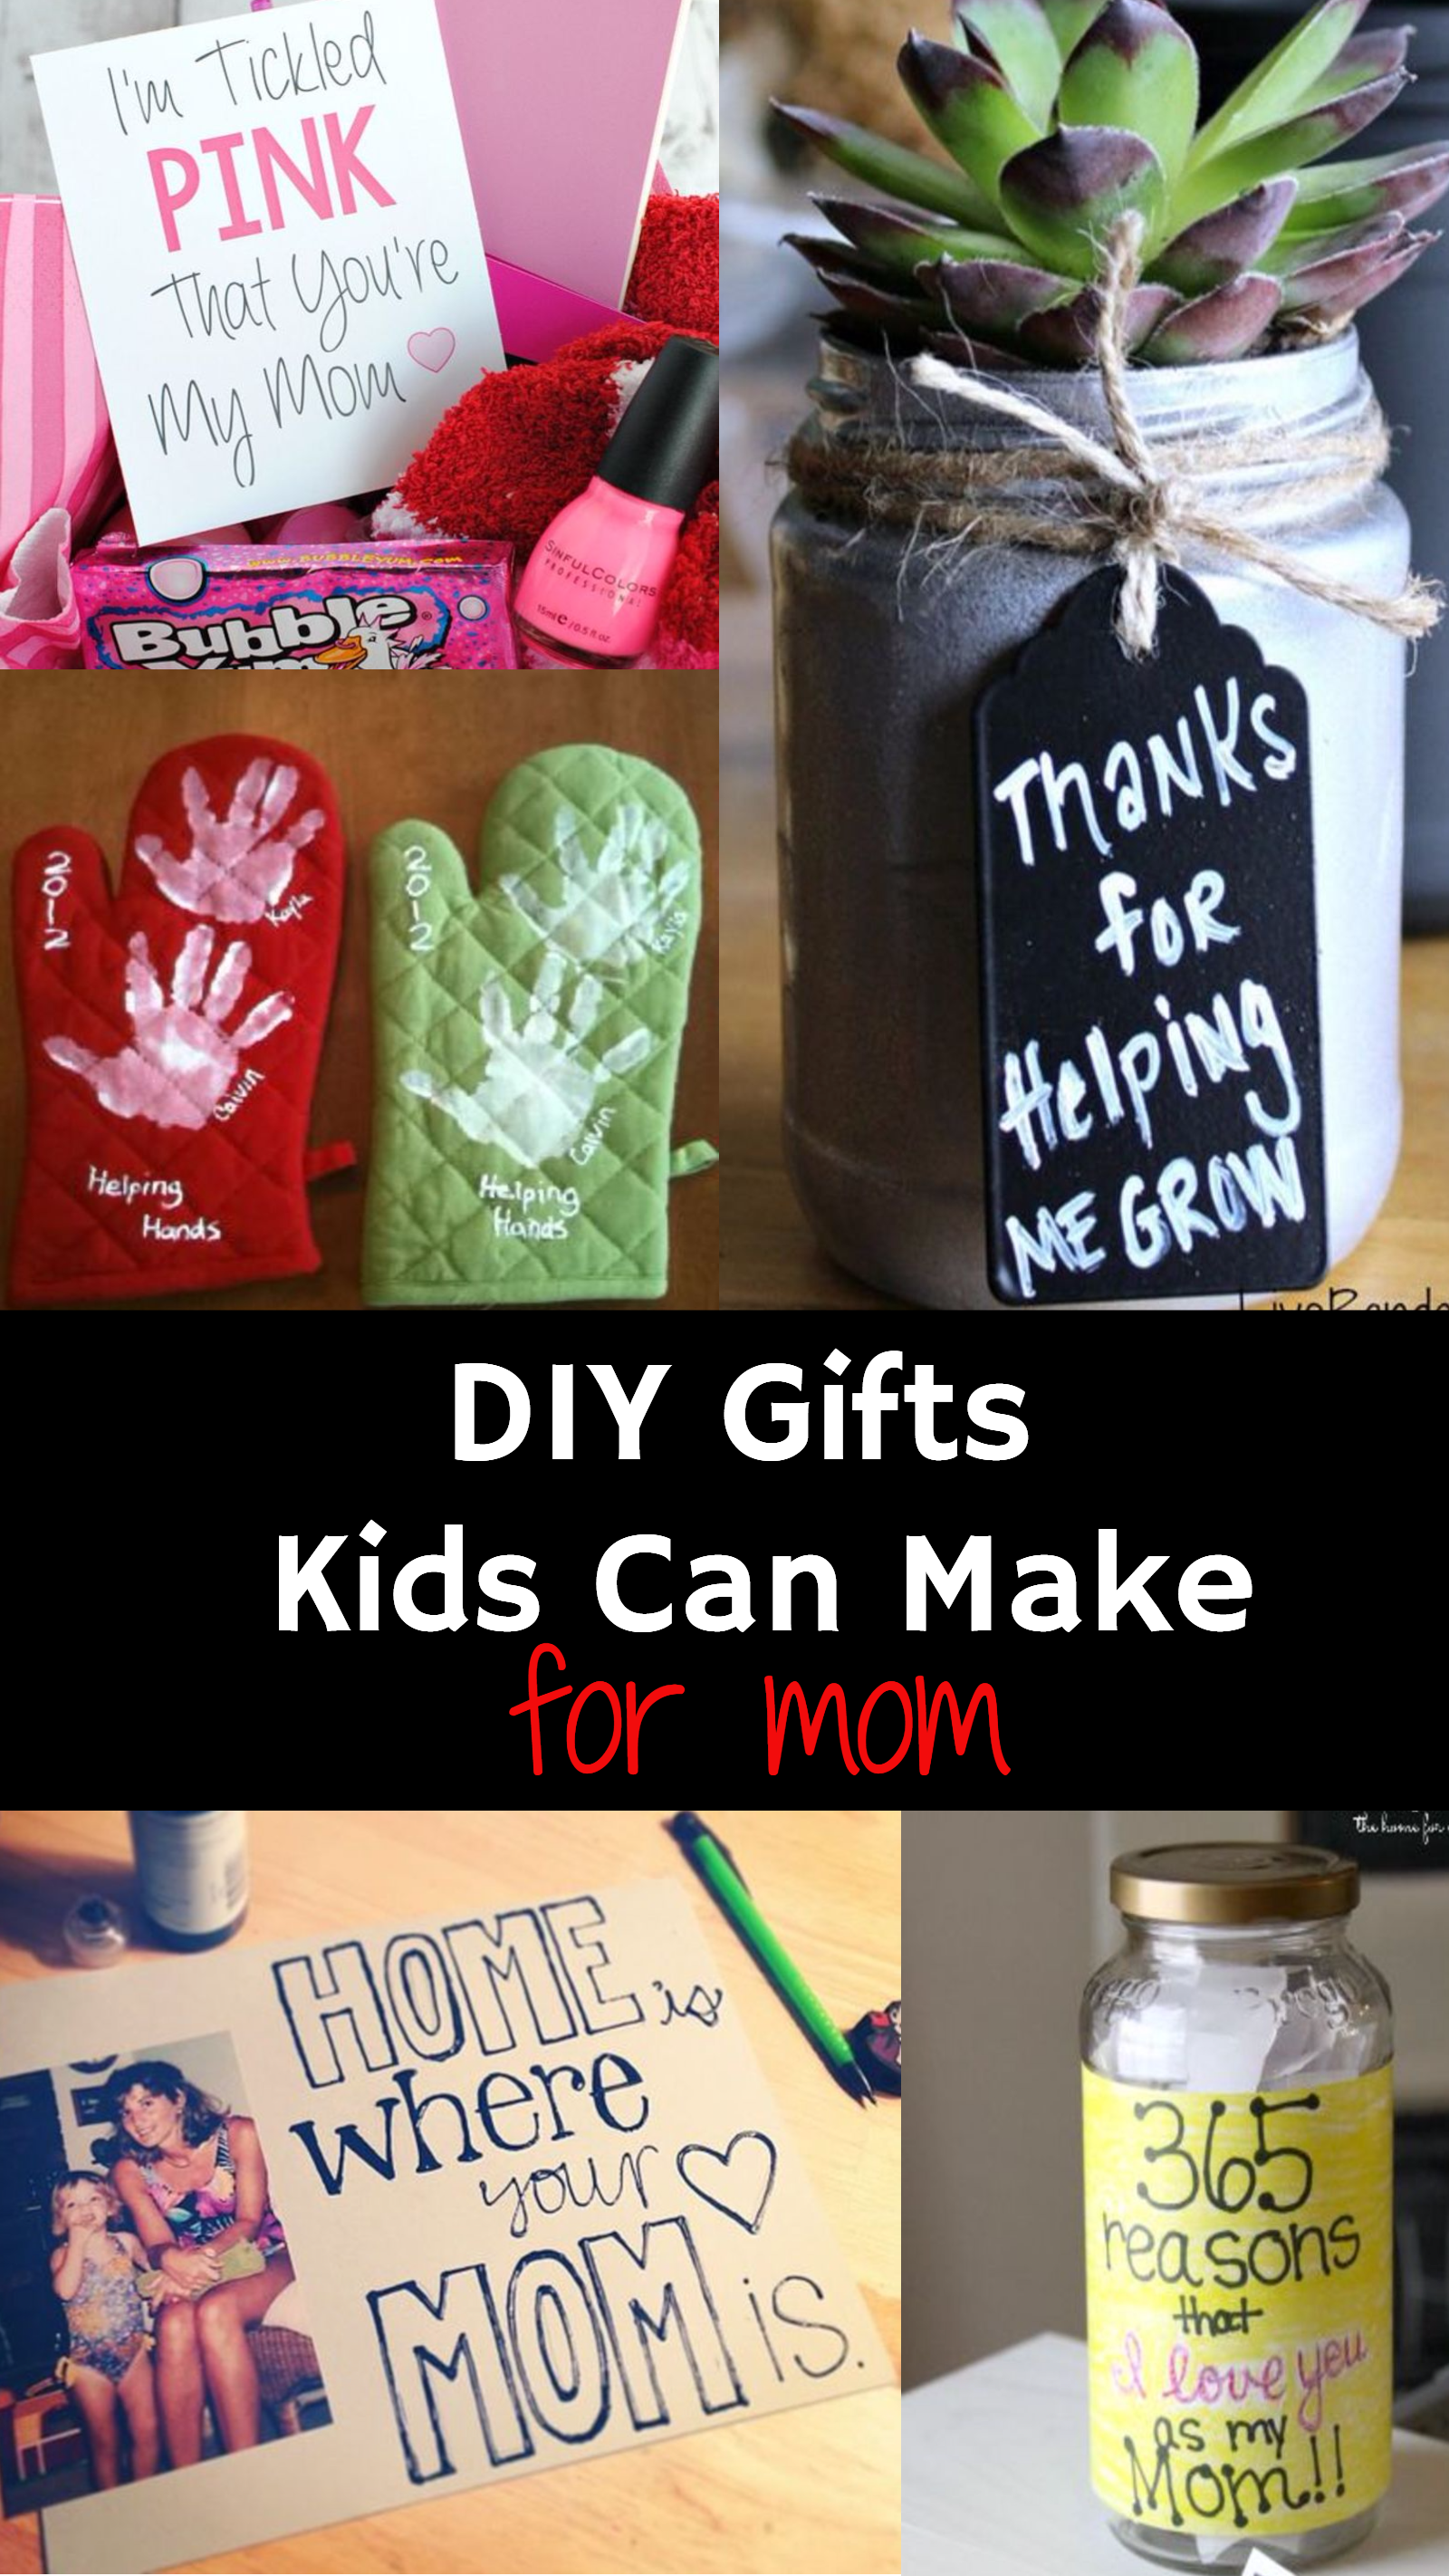 Easy Diy Gifts For Mom From Kids Crafty Diy Gifts For Kids Diy